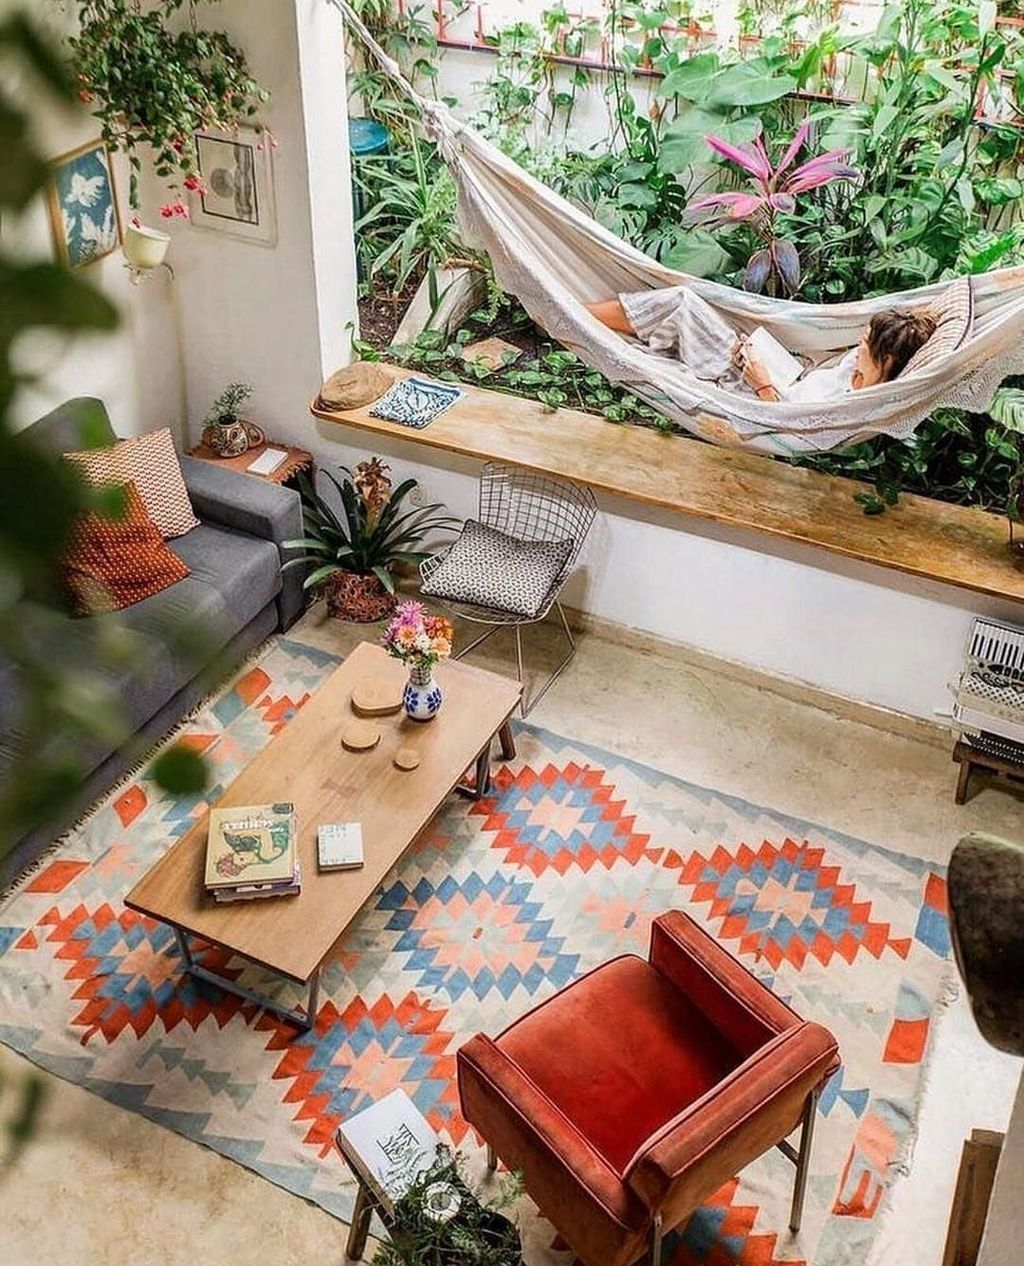 40 Unique Hippie Home Decor Ideas images